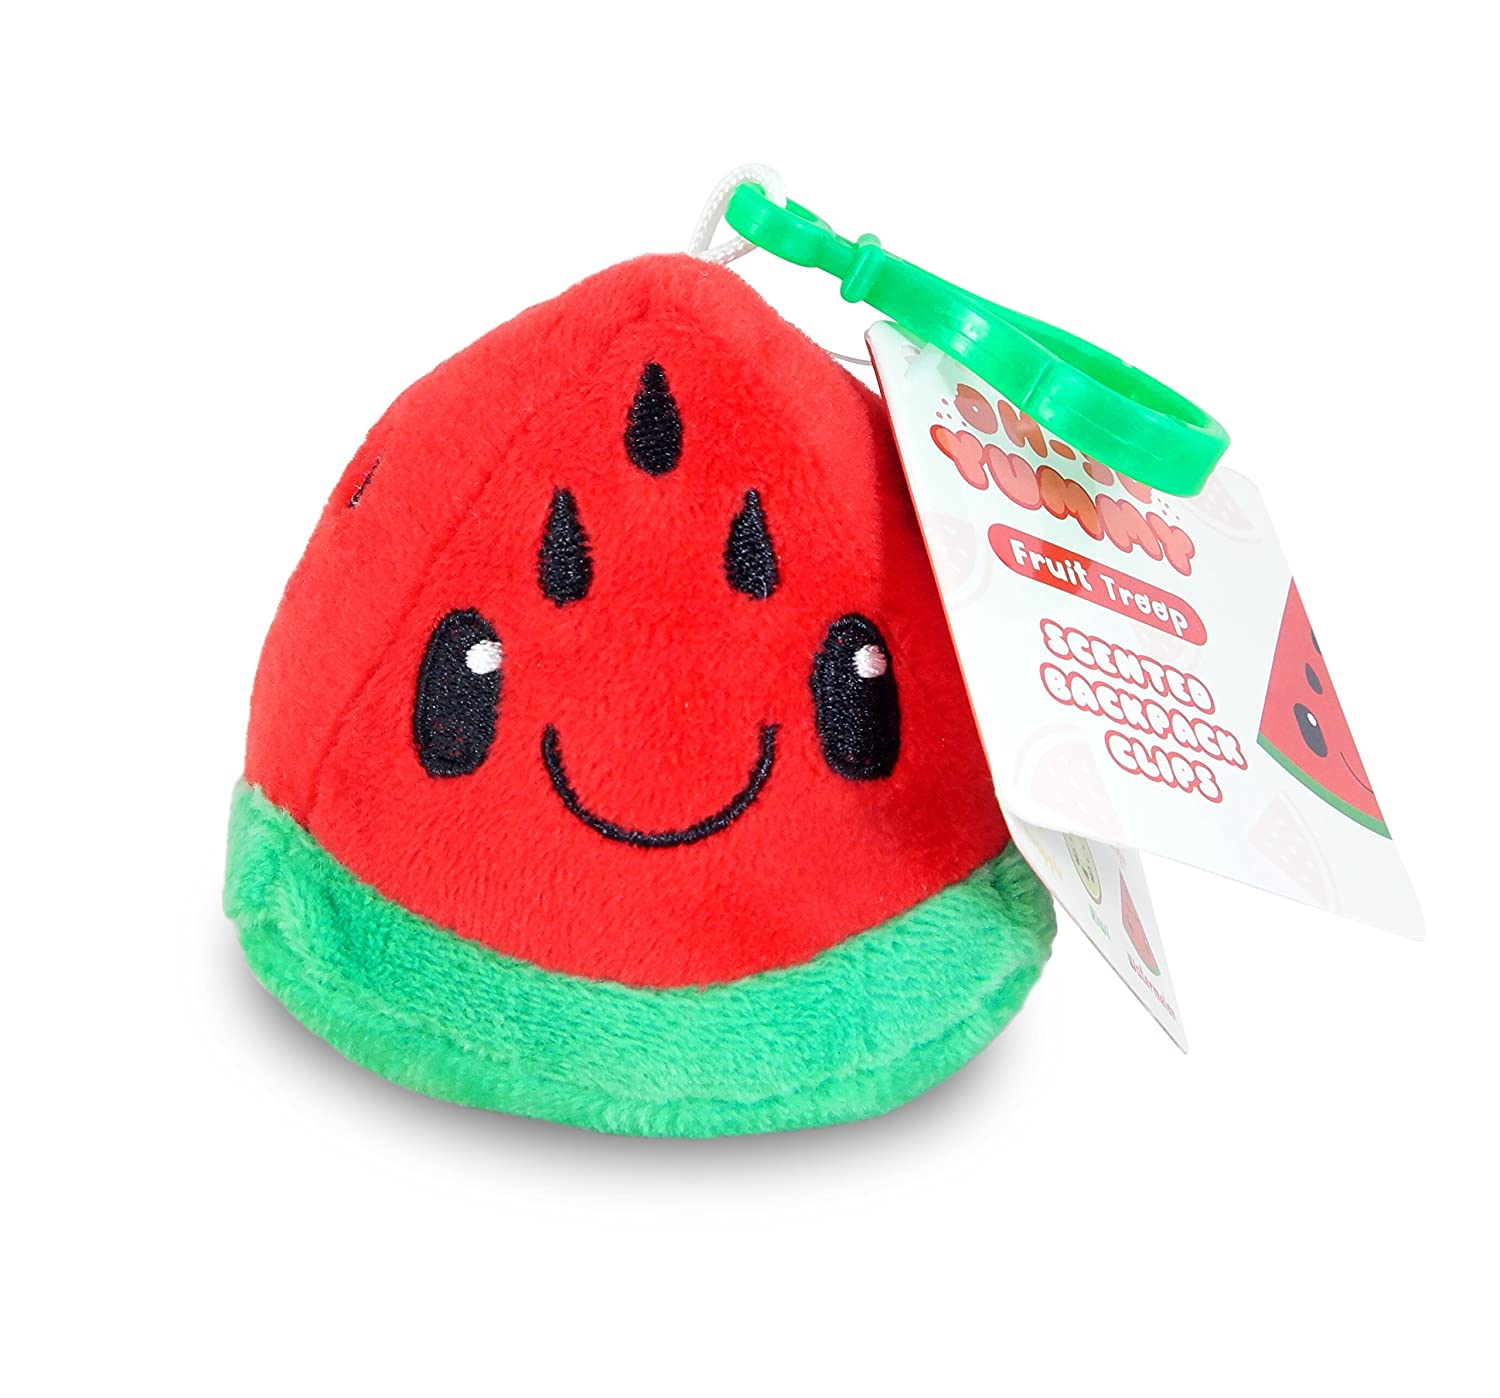 Scentco Fruit Troop Backpack Buddies Watermelon Scented Plush